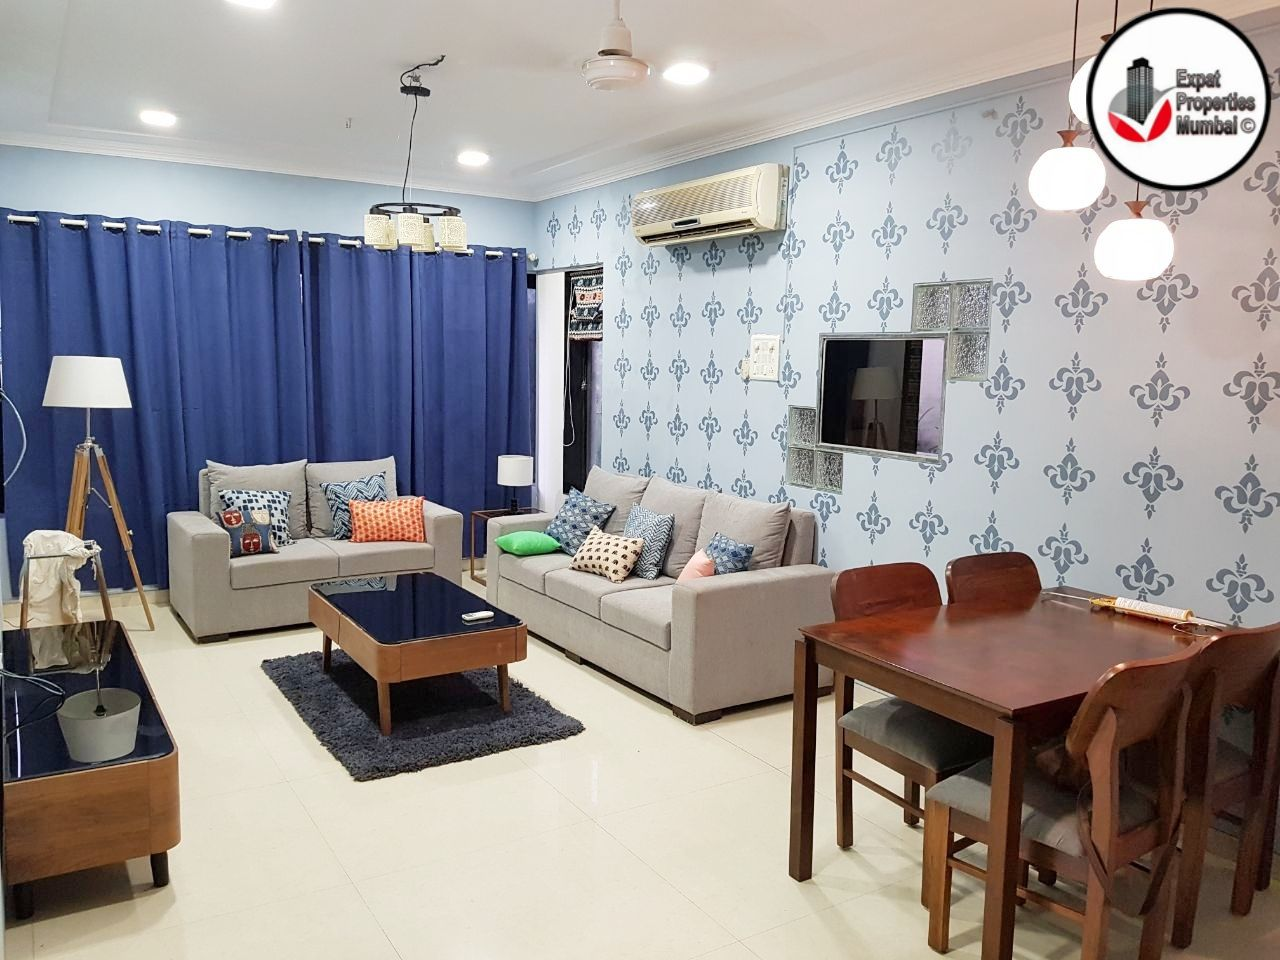 2 Bhk Furnished Sea View Apartment For Rent In Bandra